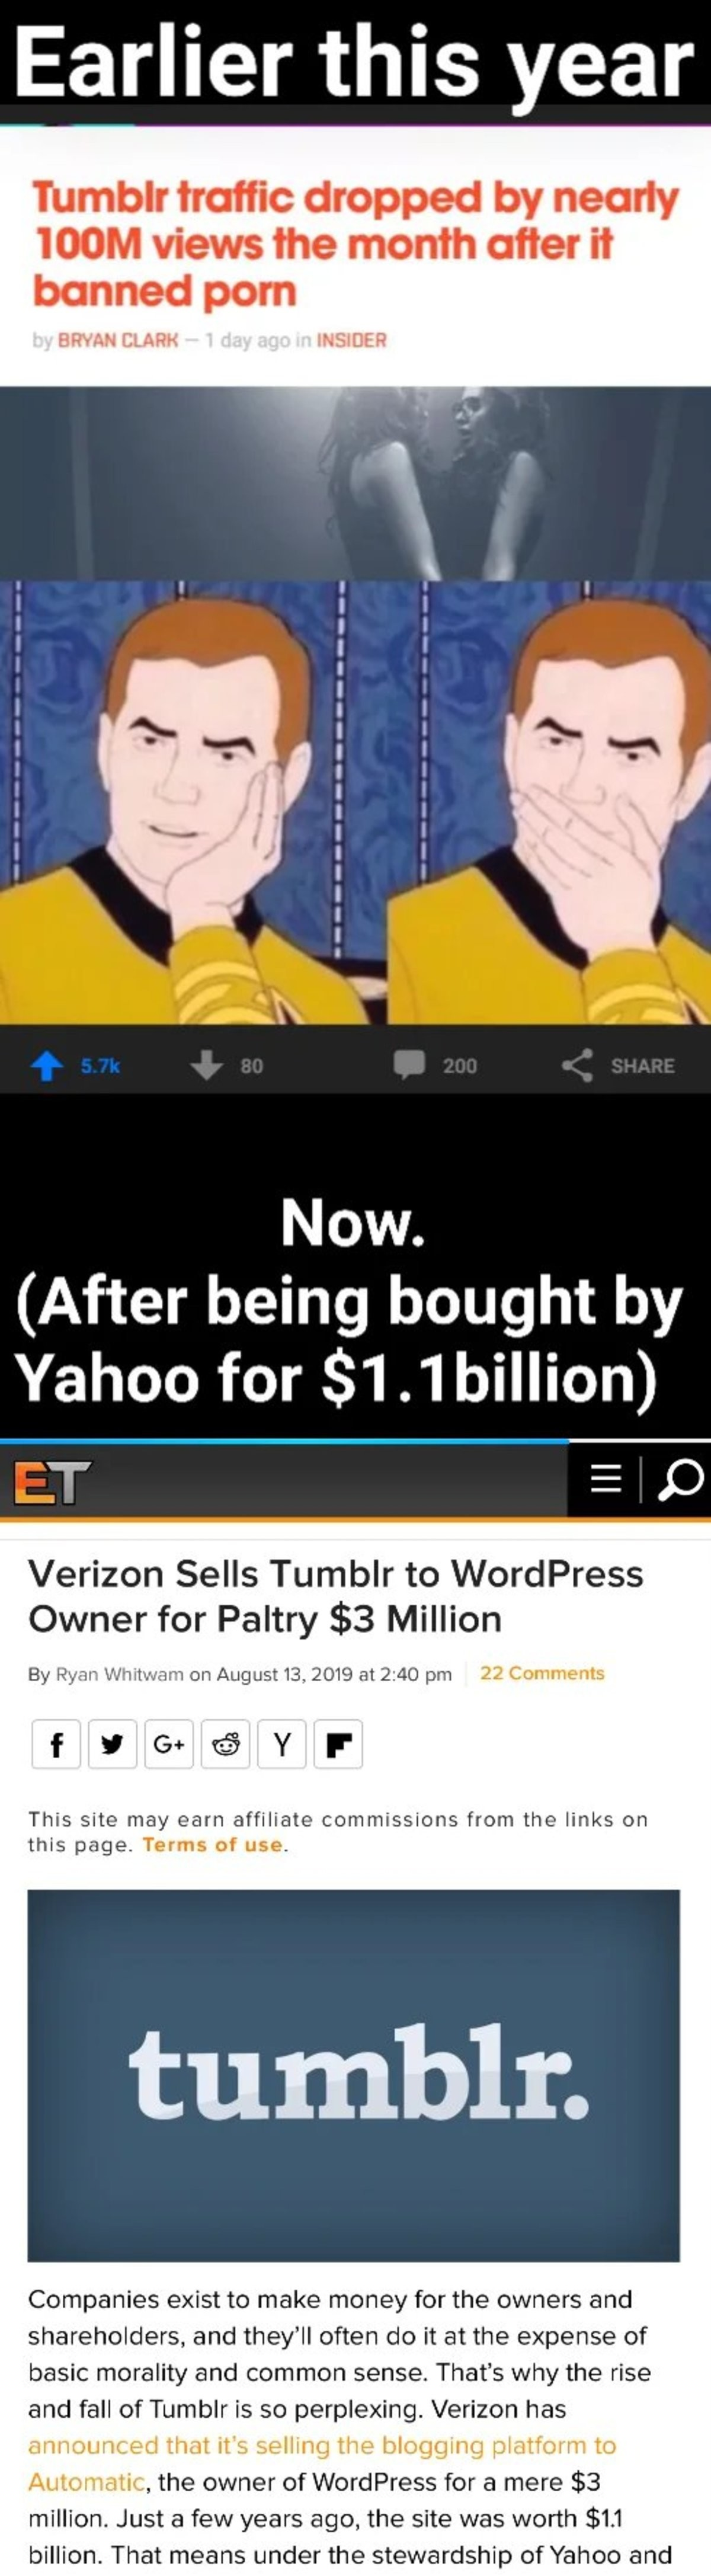 Cox. (couldn't find a better quality version of this).. why didnt they just put porn back on it instead of selling it for 3mil? big brain time